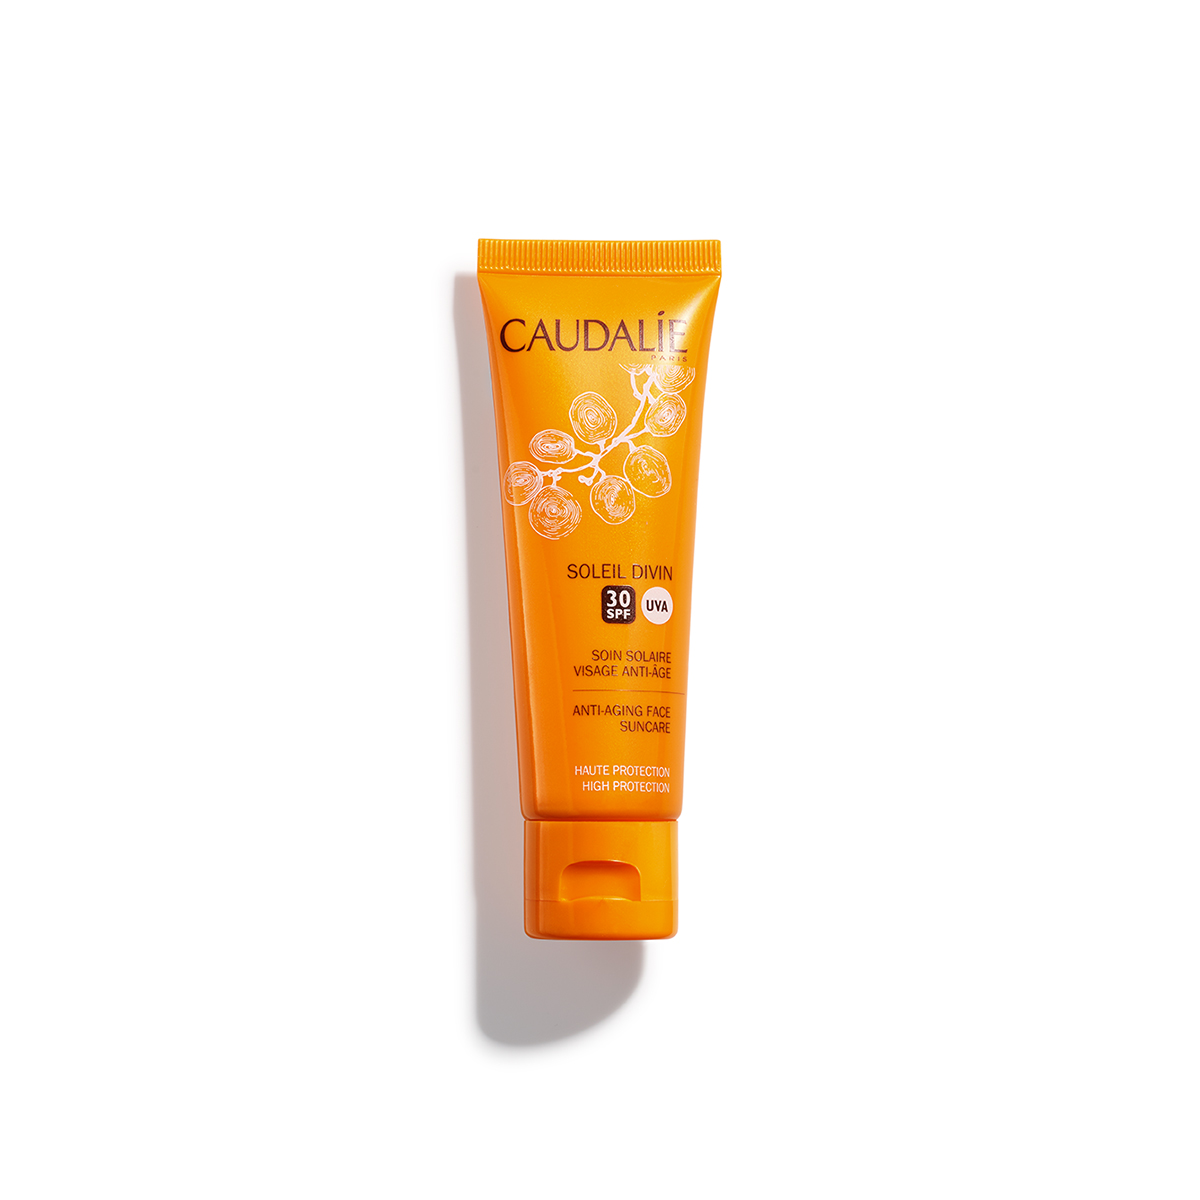 Anti-ageing Face Suncare SPF30